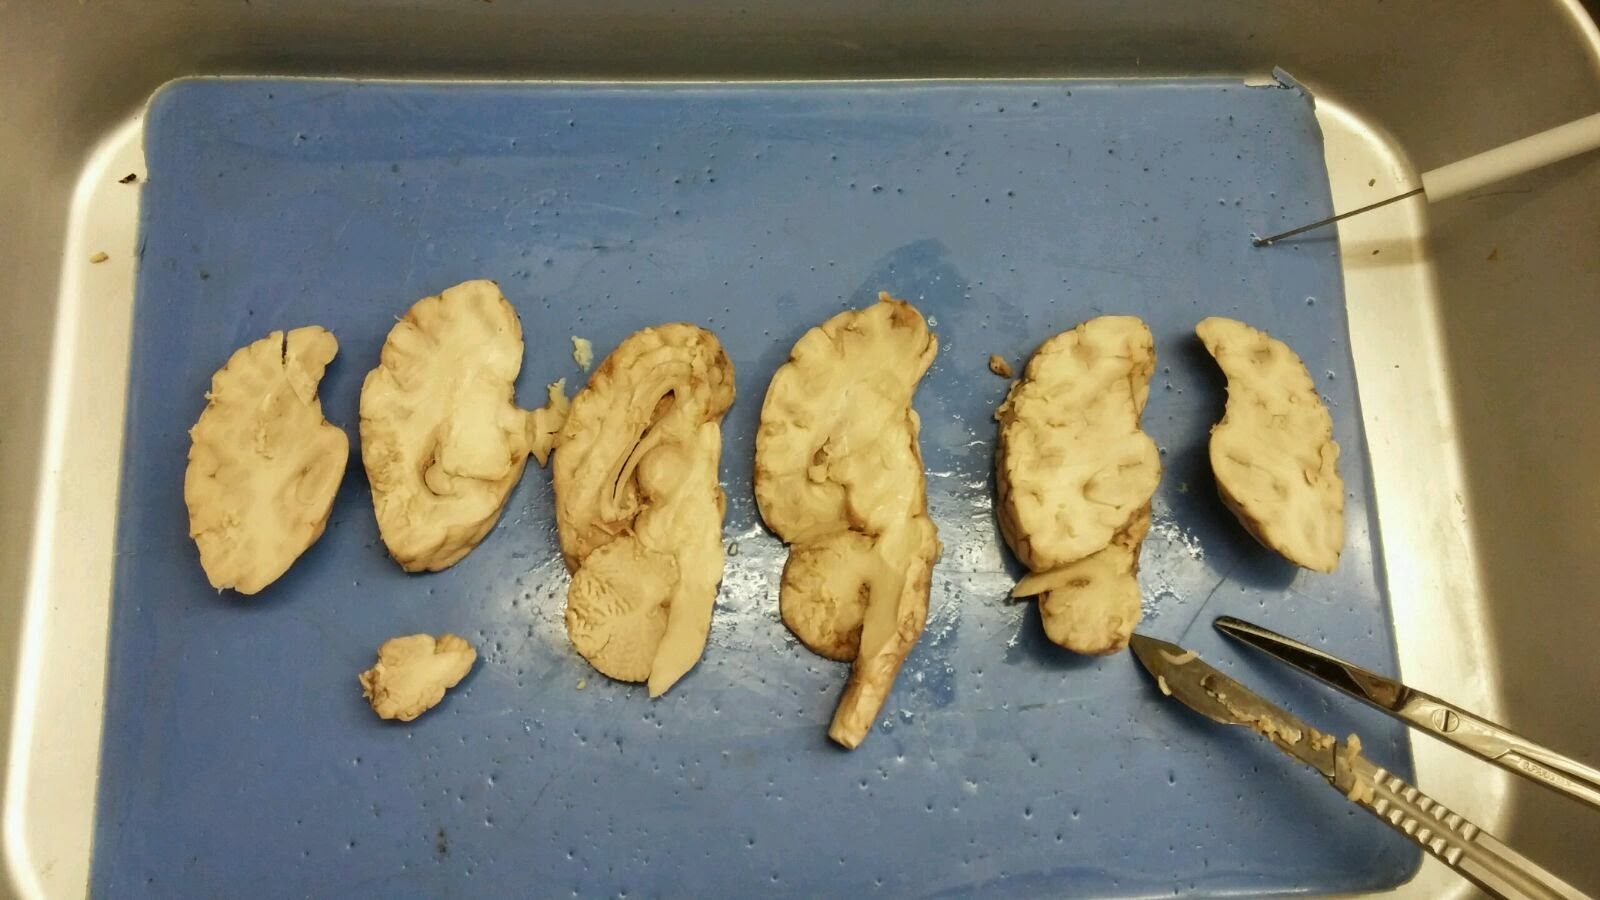 Human Anatomy & Physiology: Sheep Brain Dissection